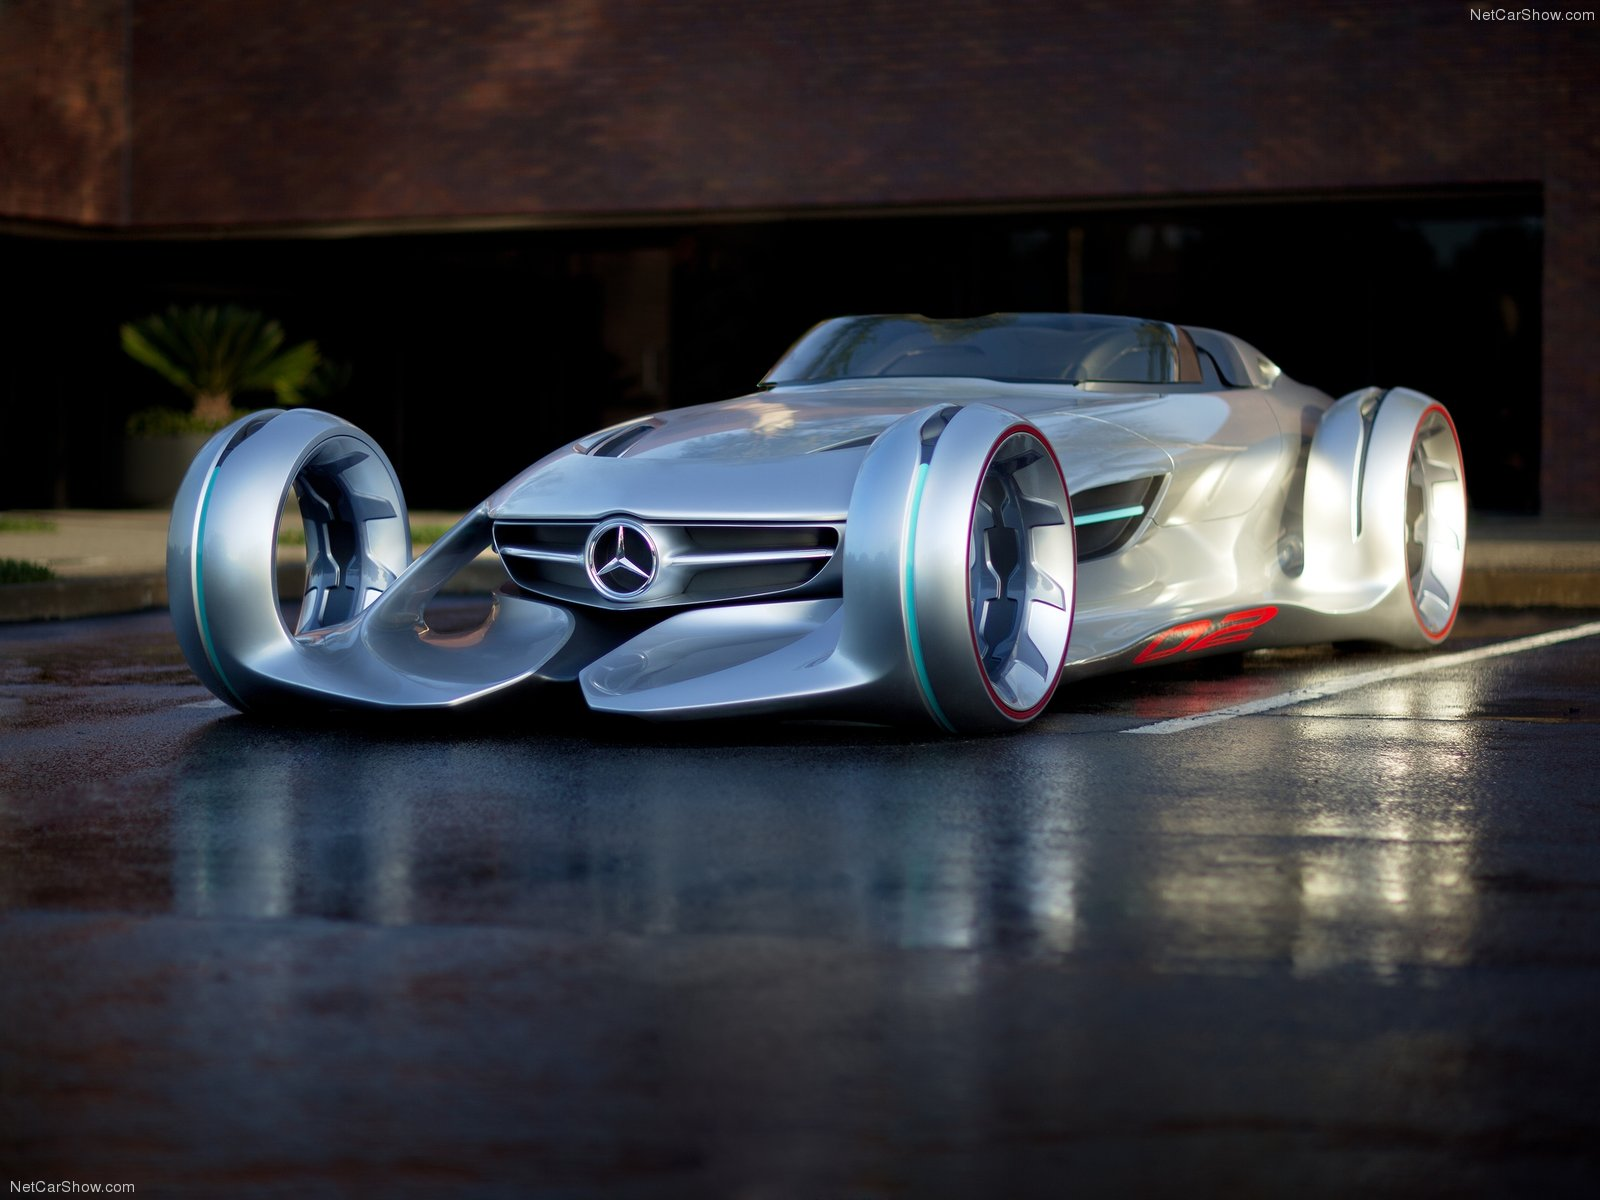 Mercedes Benz Silver Arrow Concept 2017 1600x1200 Wallpaper 01